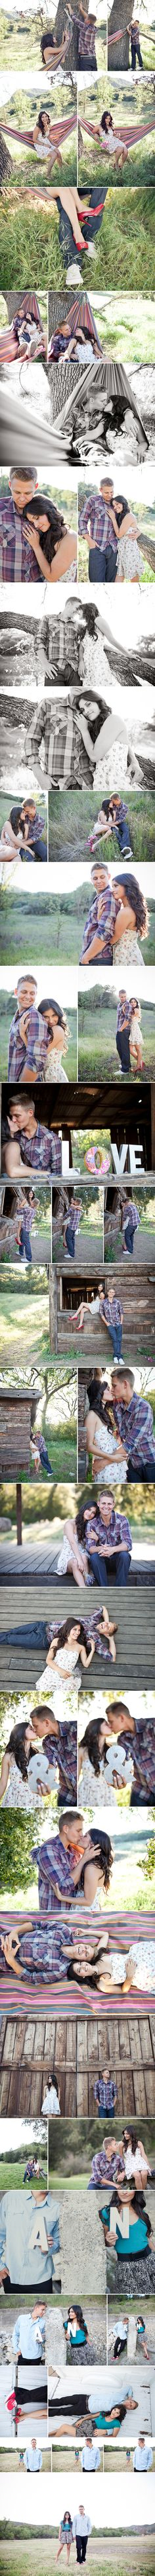 Anniversary picture ideas  -LOVE these! Had to resched my photoshoot due to the weather, buuuut that just gives me longer to find more ideas :)